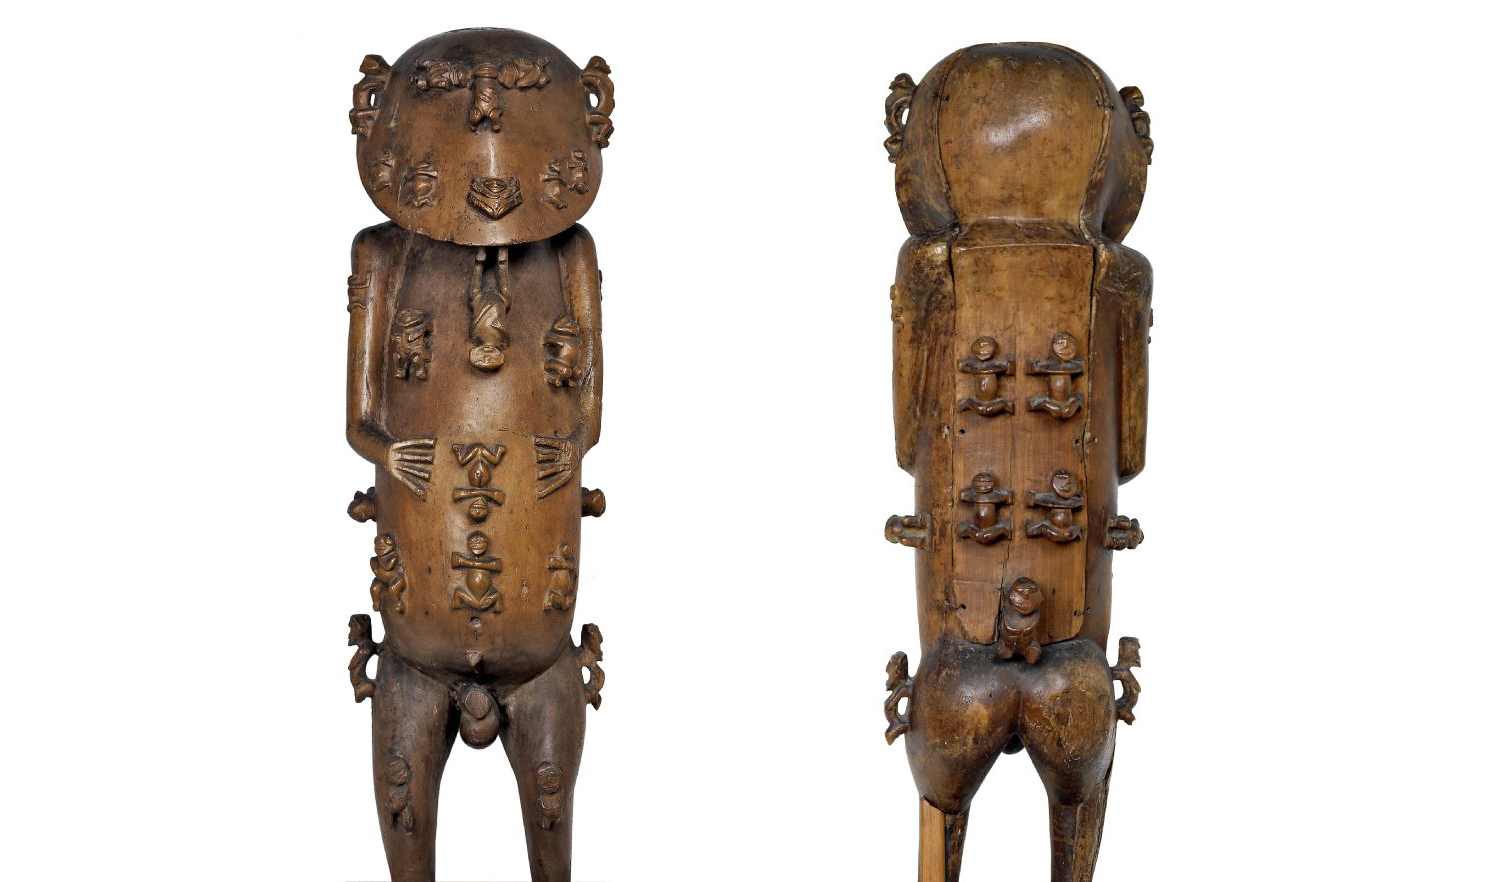 Carved wooden figure known as A'a (two views), late 18th century C.E., hardwood, possibly pua, 117 cm high, Raiatea, Rurutu, Austral Islands, French Polynesia © The Trustees of the British Museum